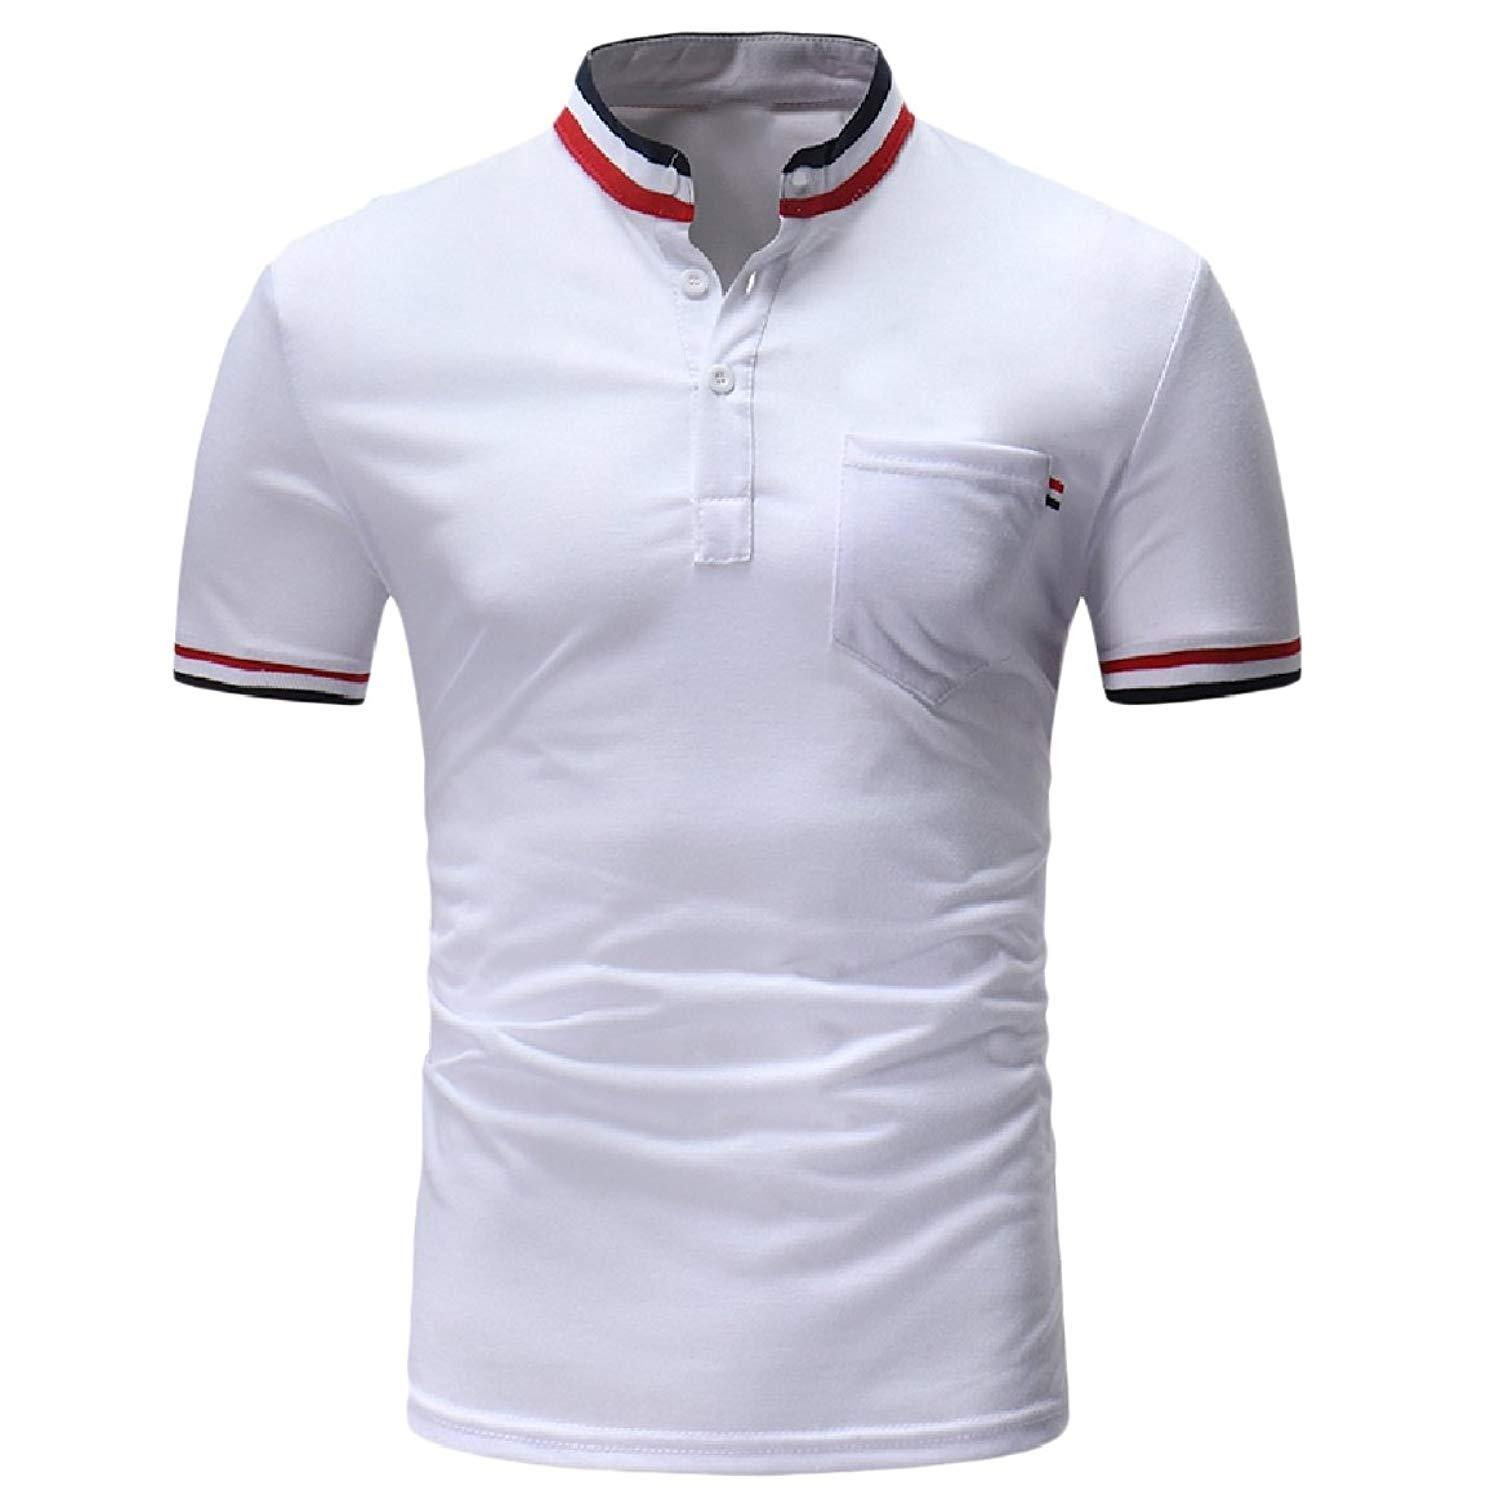 ee0f3717309 Men S Short Sleeve Polo Vogue Stand Up Collar Casual Dress T Shirt ...